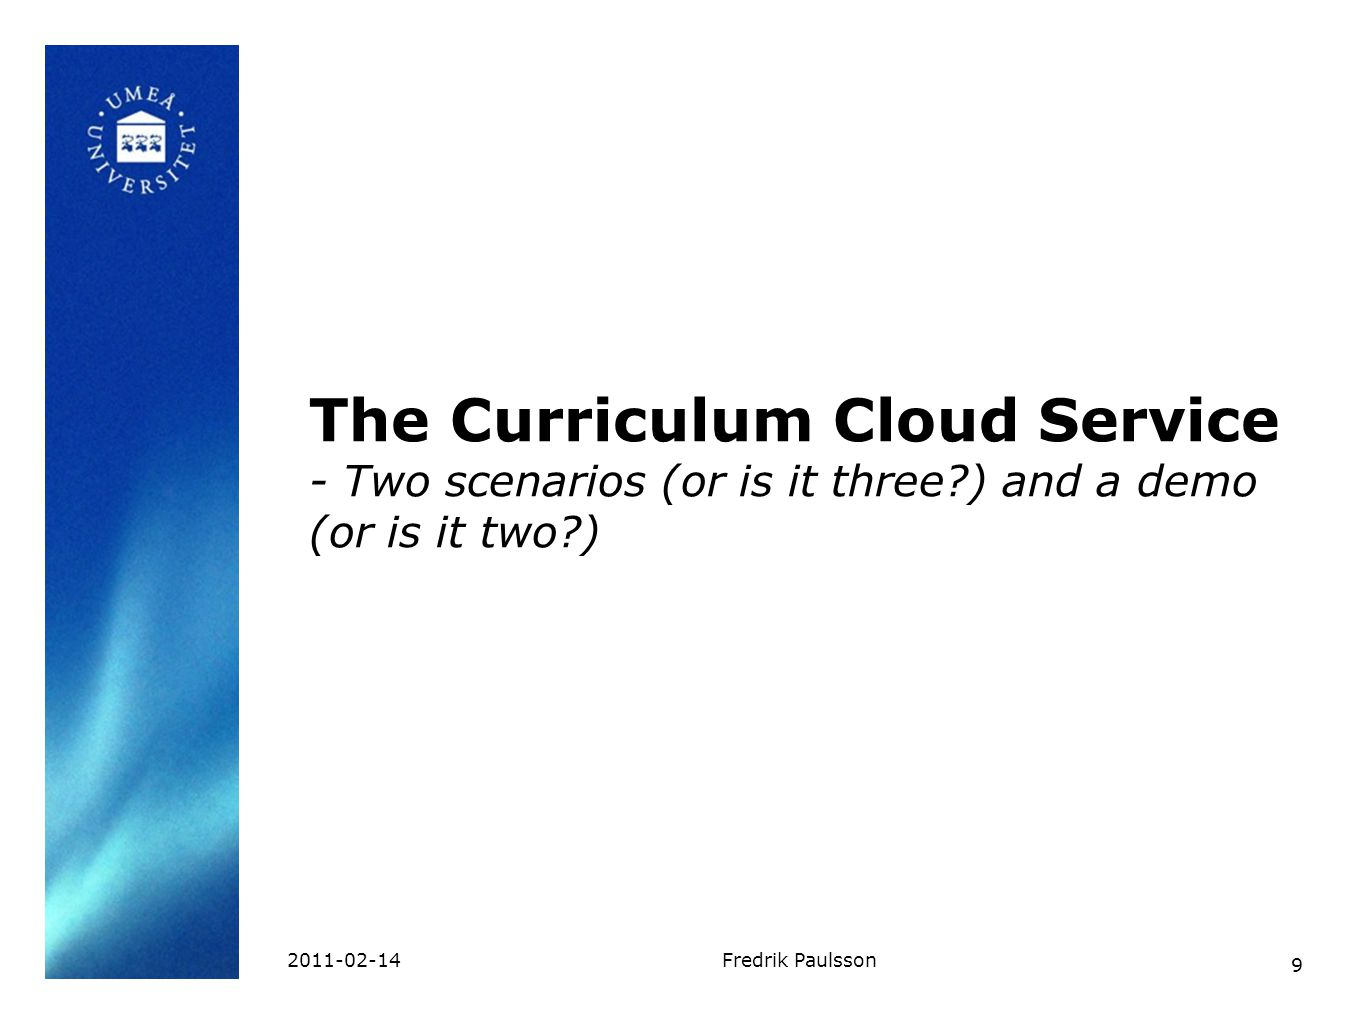 9 2011-02-14Fredrik Paulsson The Curriculum Cloud Service - Two scenarios (or is it three?) and a demo (or is it two?)